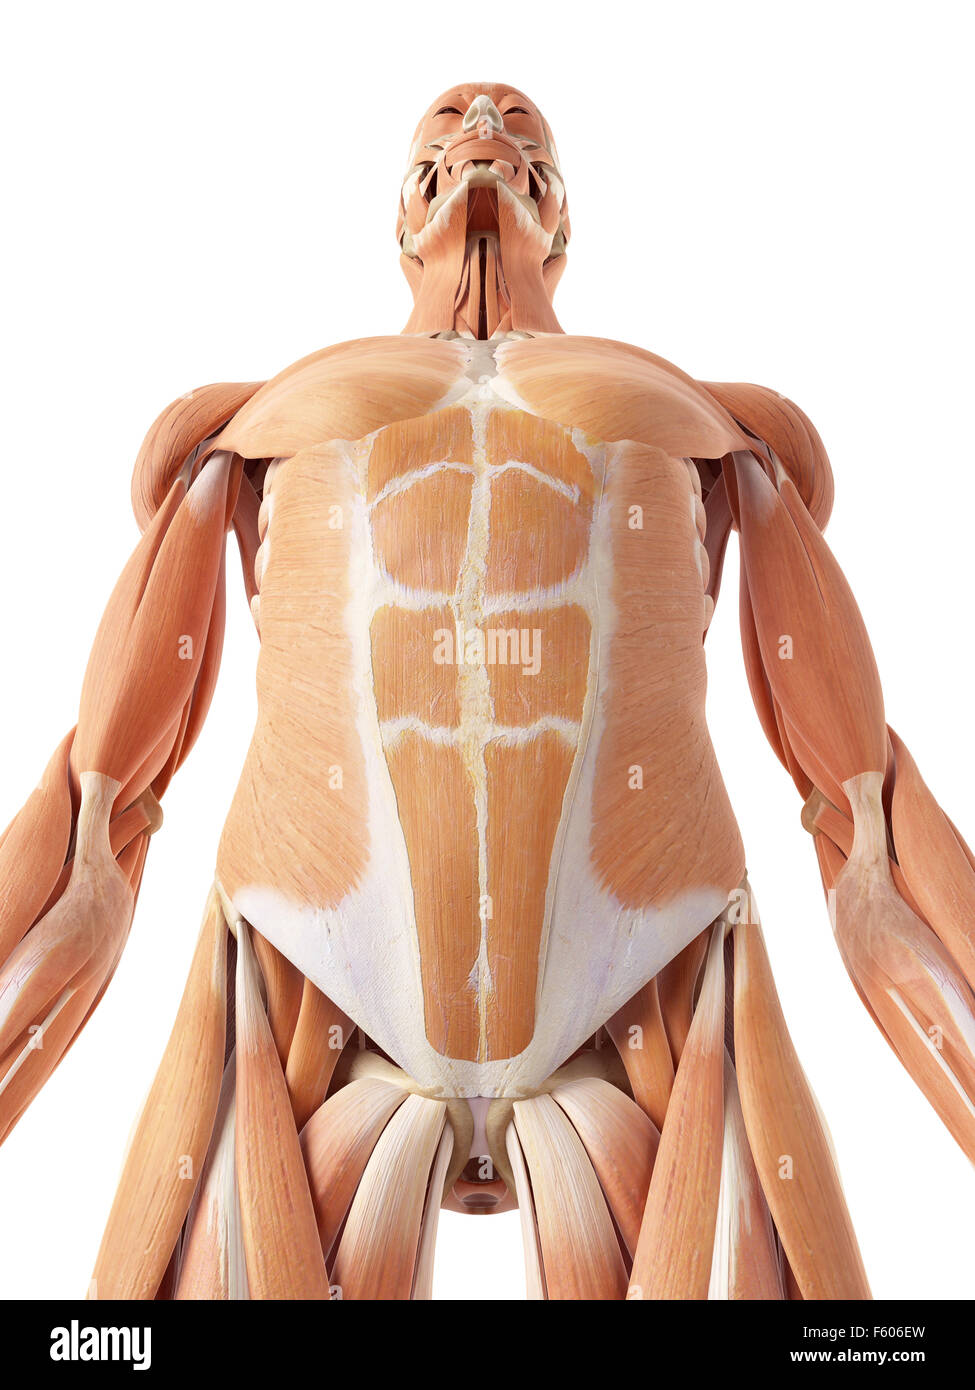 medical accurate illustration of the abdominal muscles - Stock Image